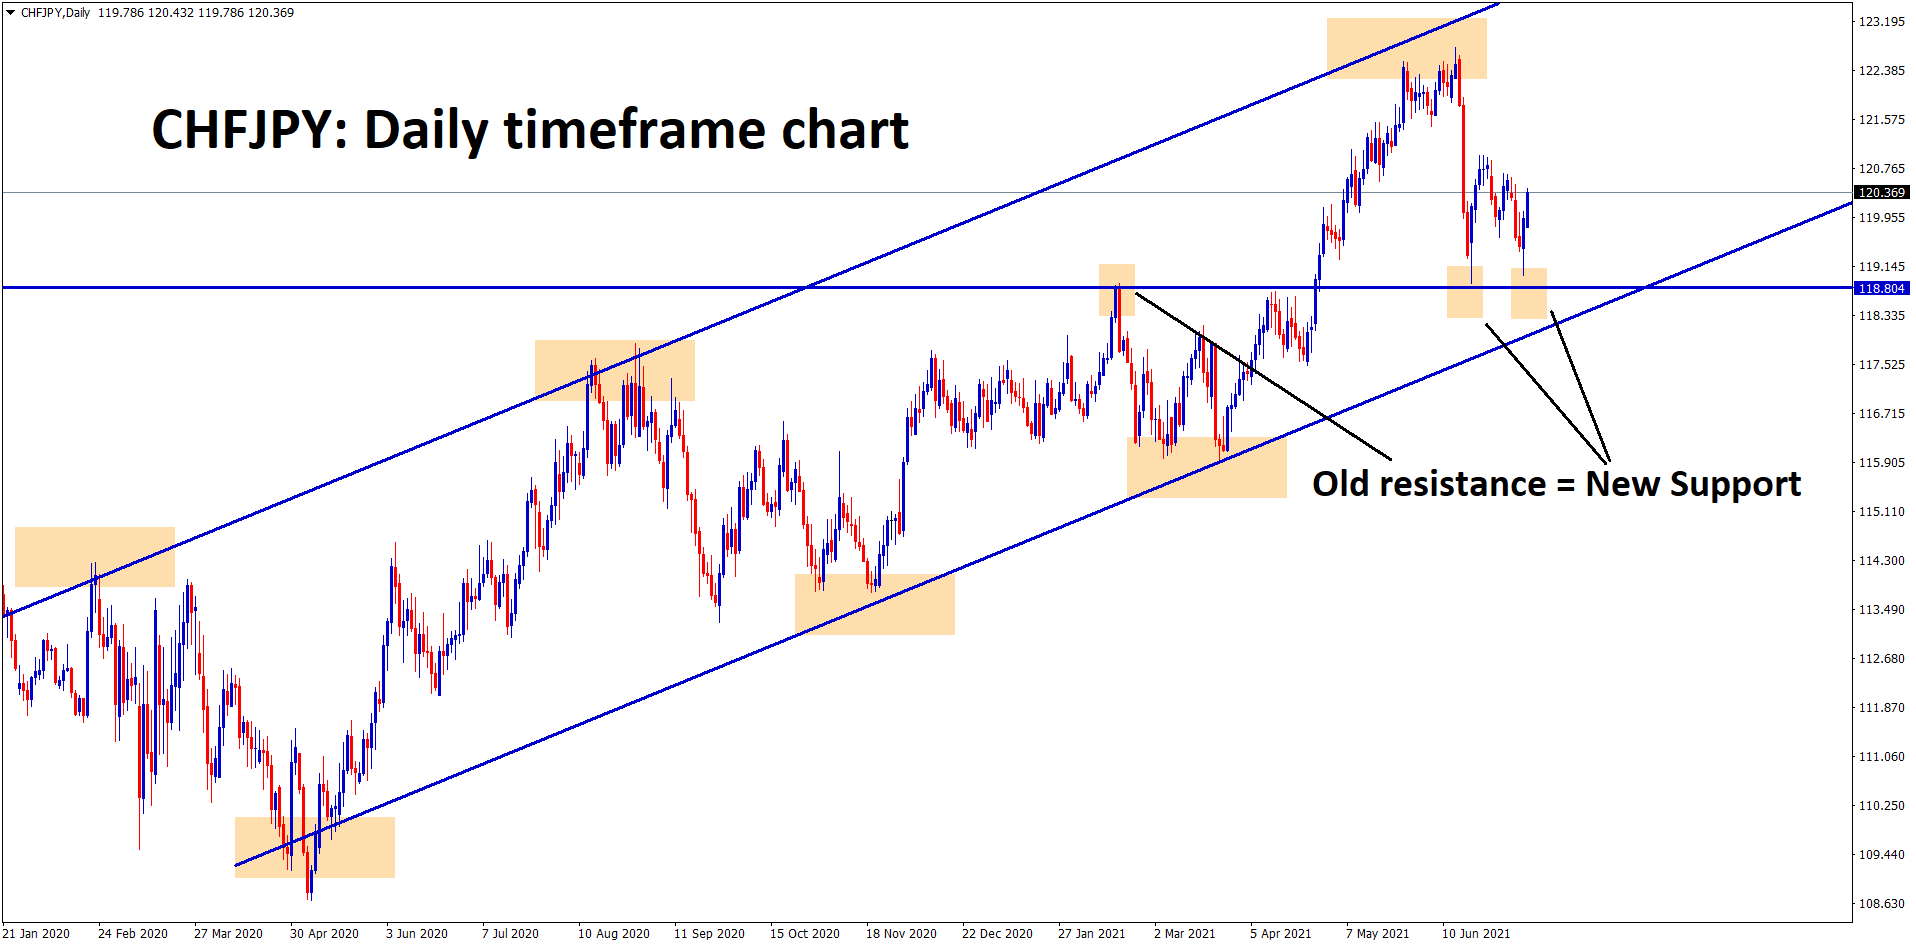 CHFJPY bouncing back after hitting the support zone